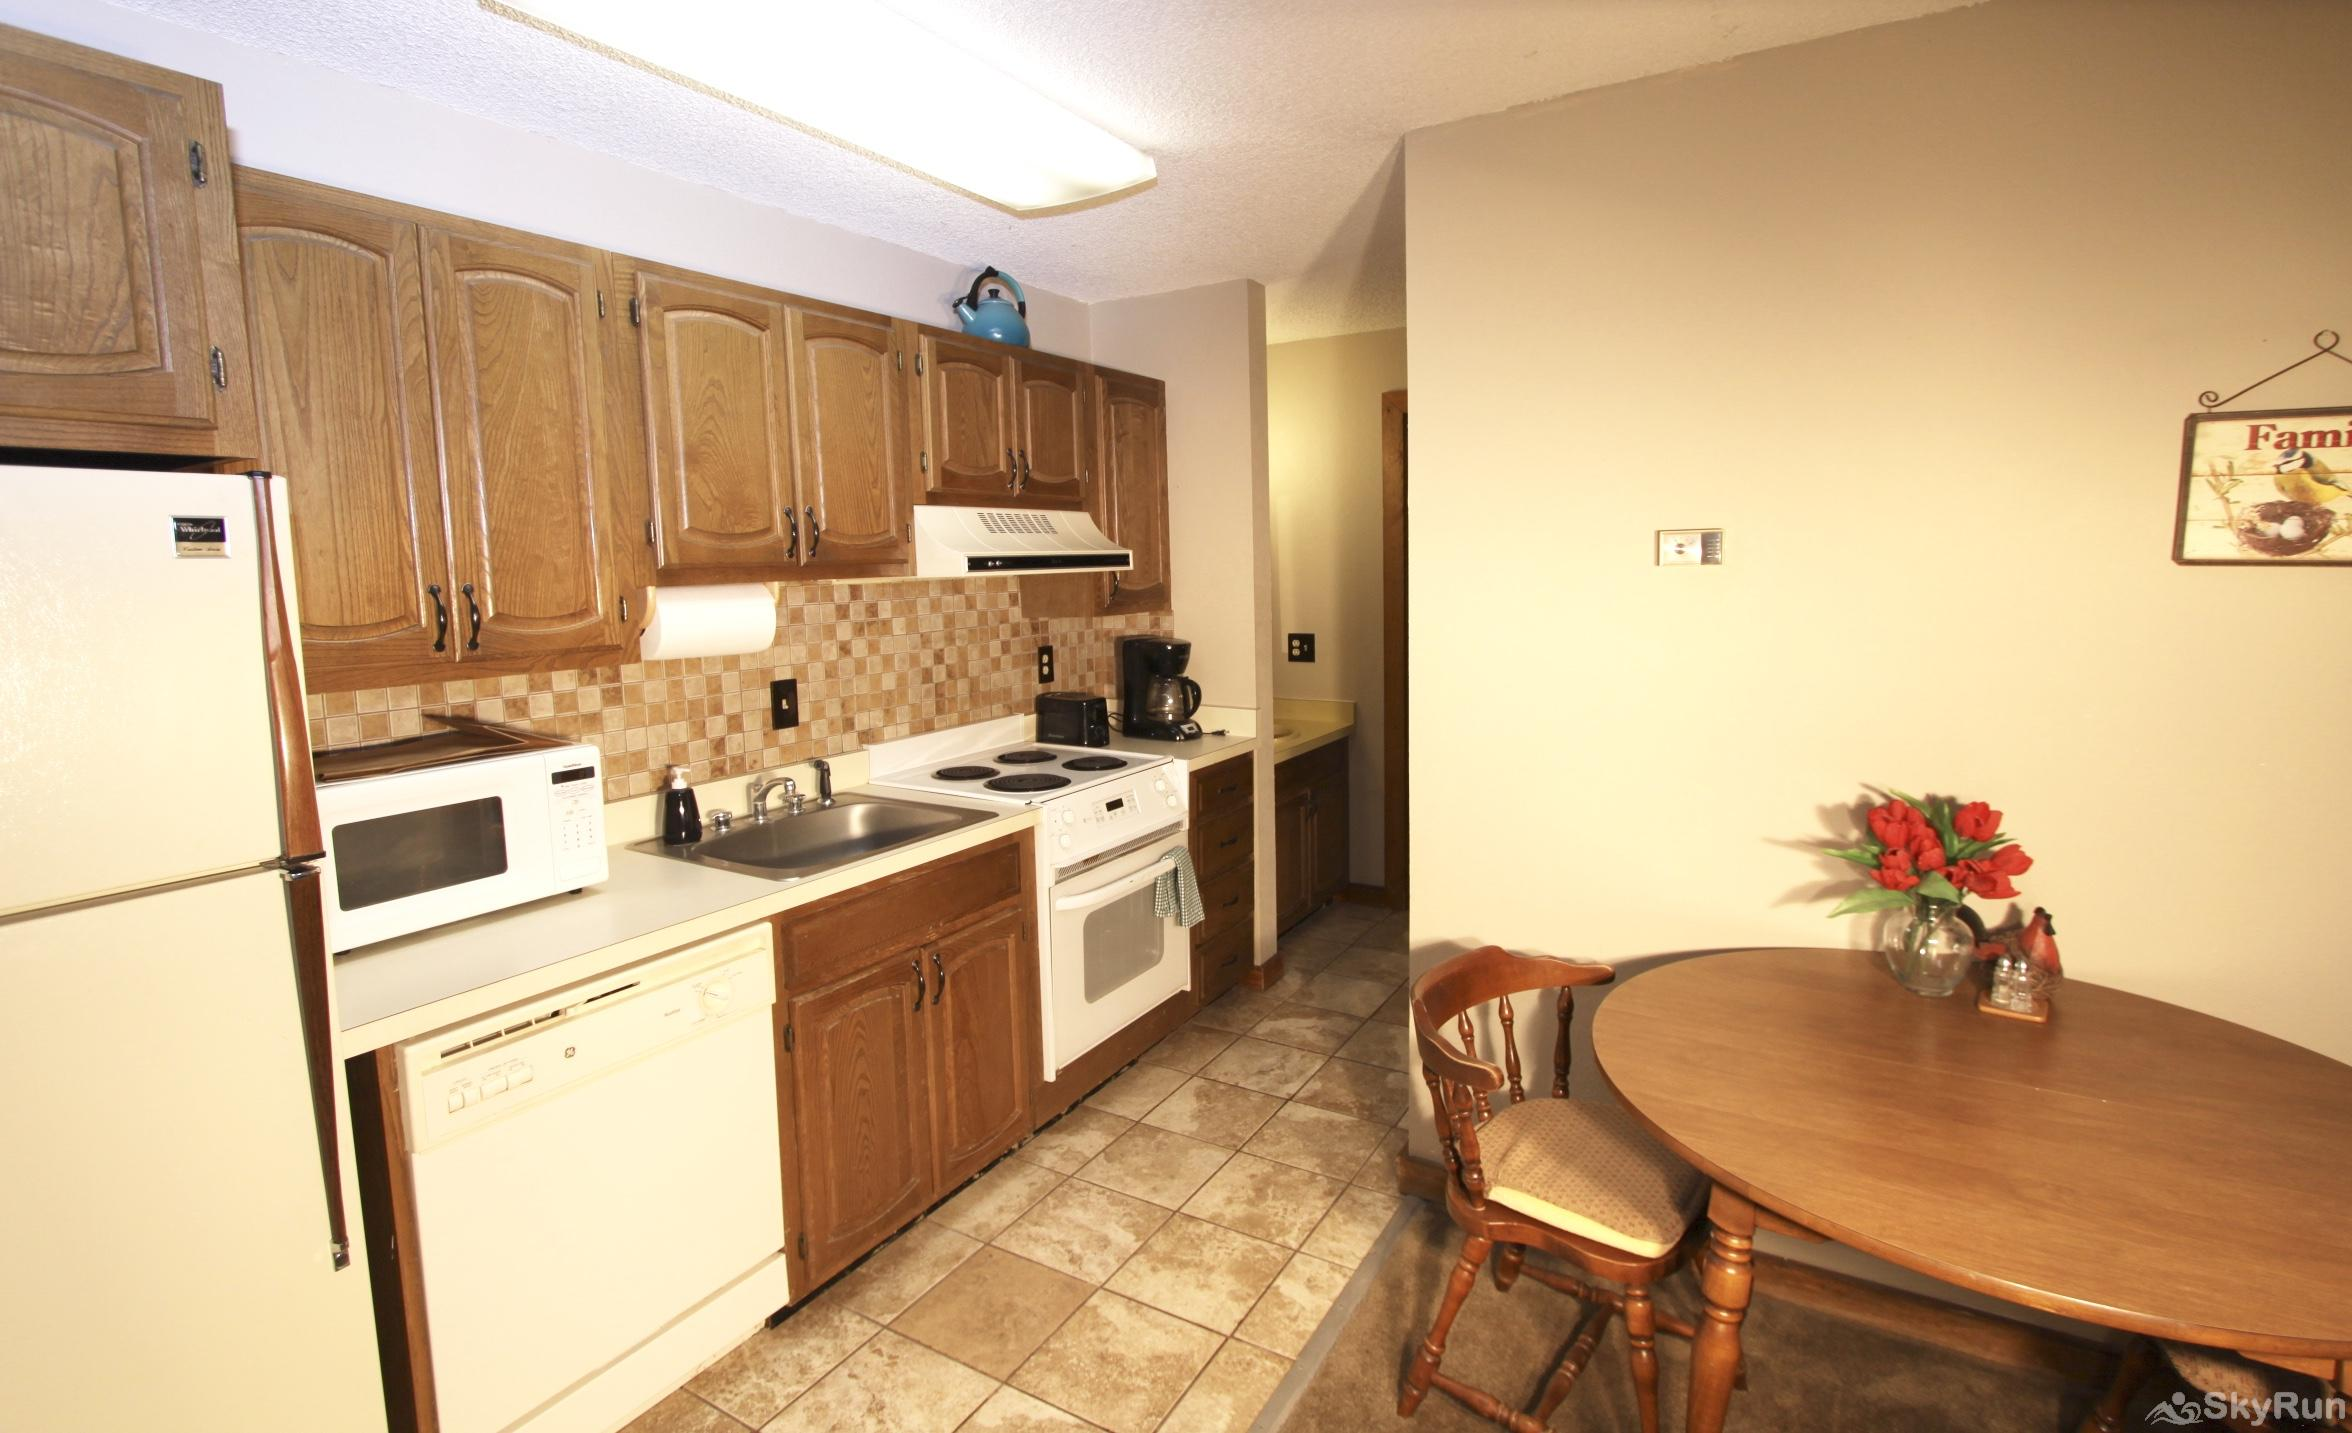 113AB WPTC - Cranmer Rd Kitchen #2 for attached 1 br